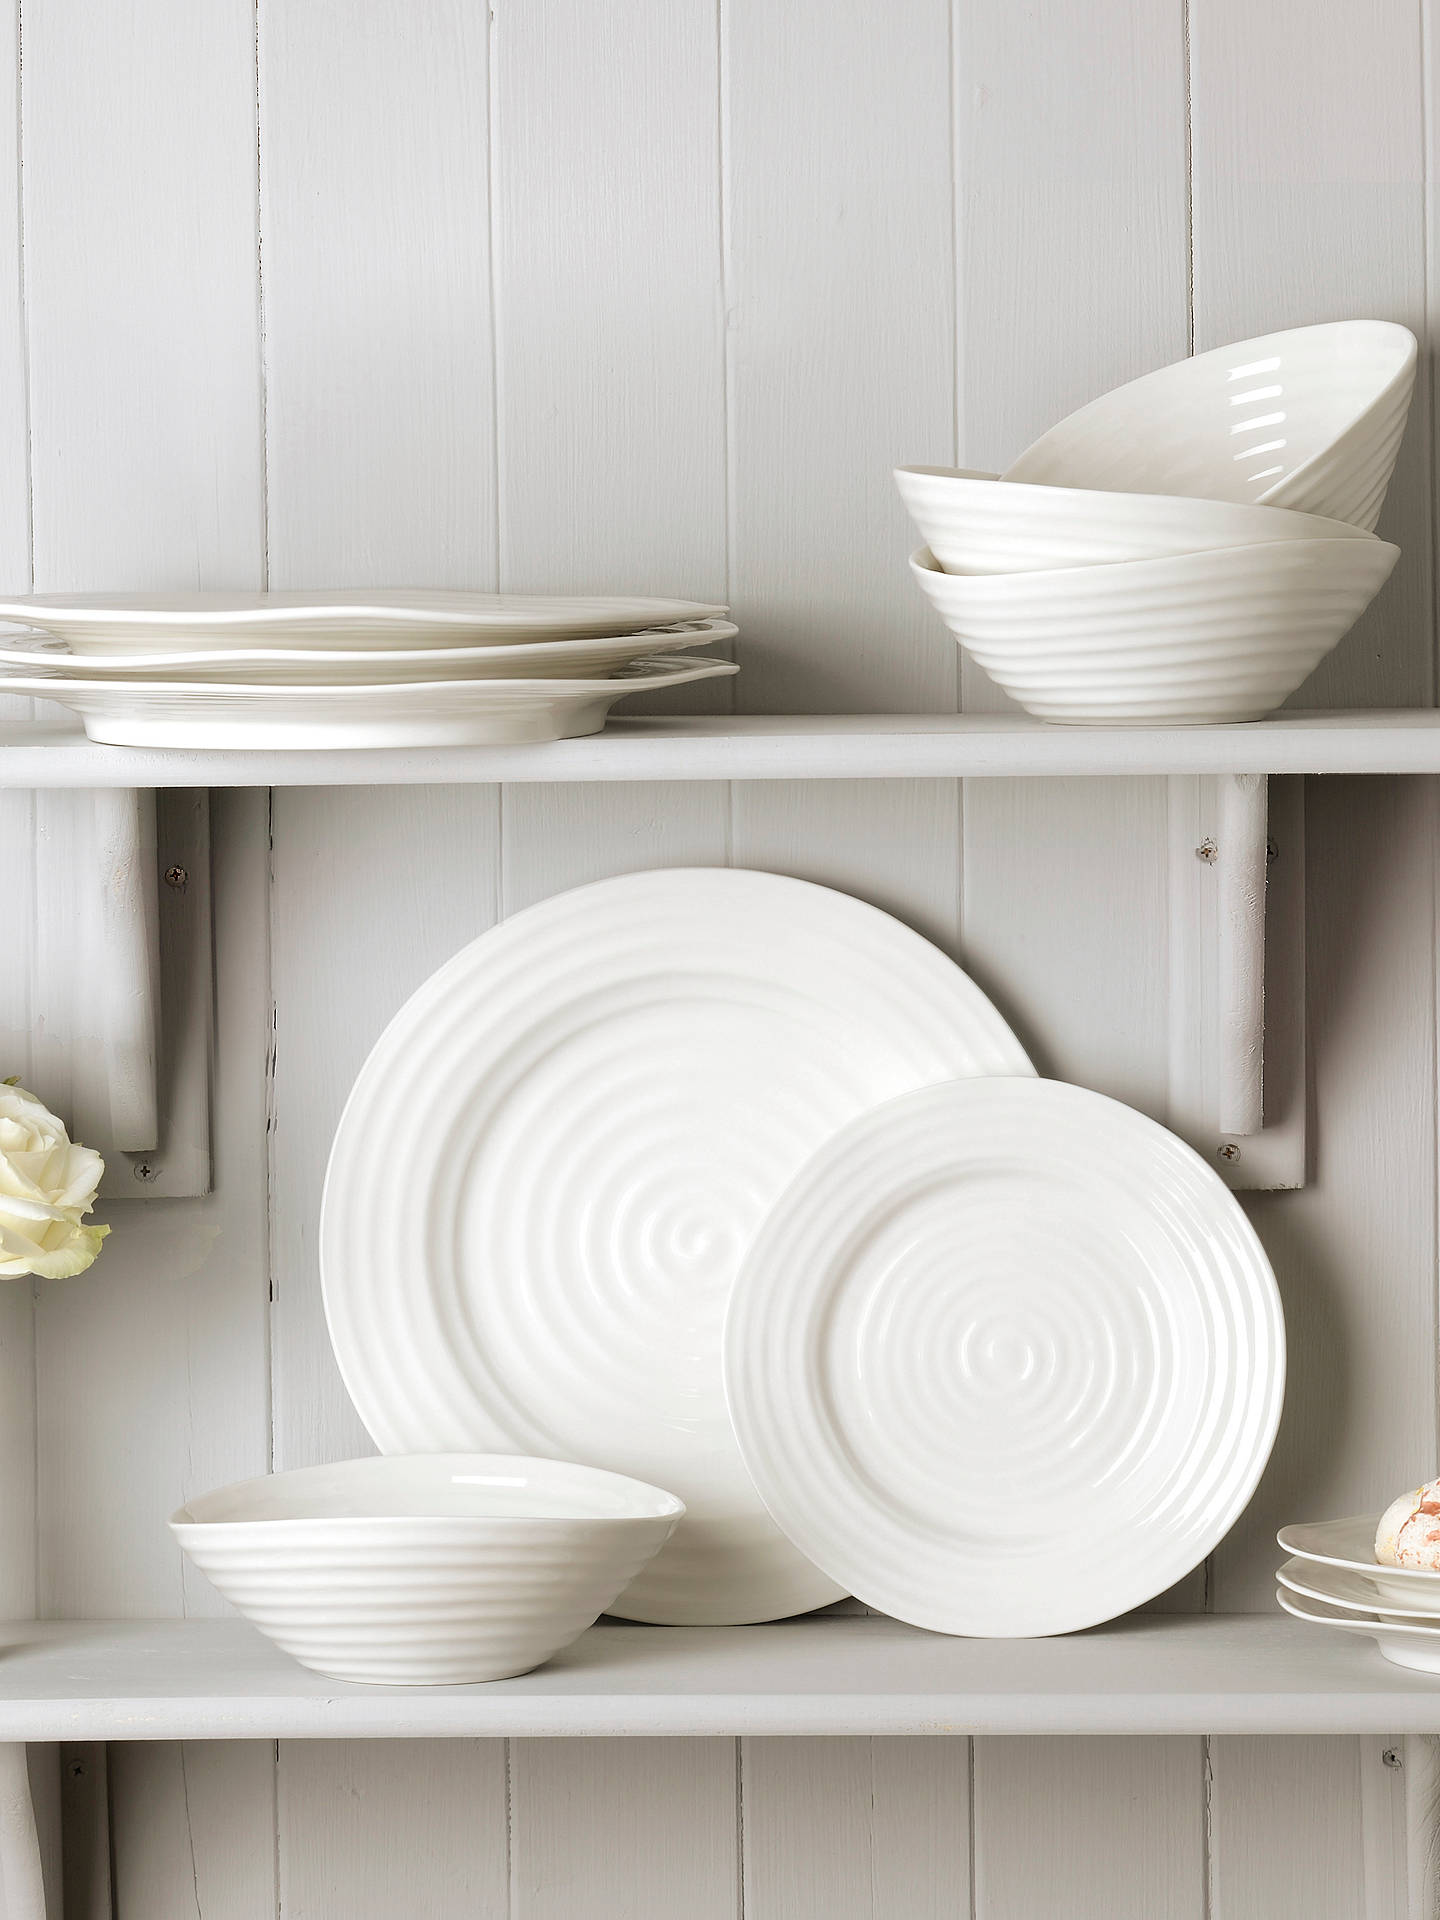 BuySophie Conran for Portmeirion Dinnerware Set, White, 12 Piece Online at johnlewis.com